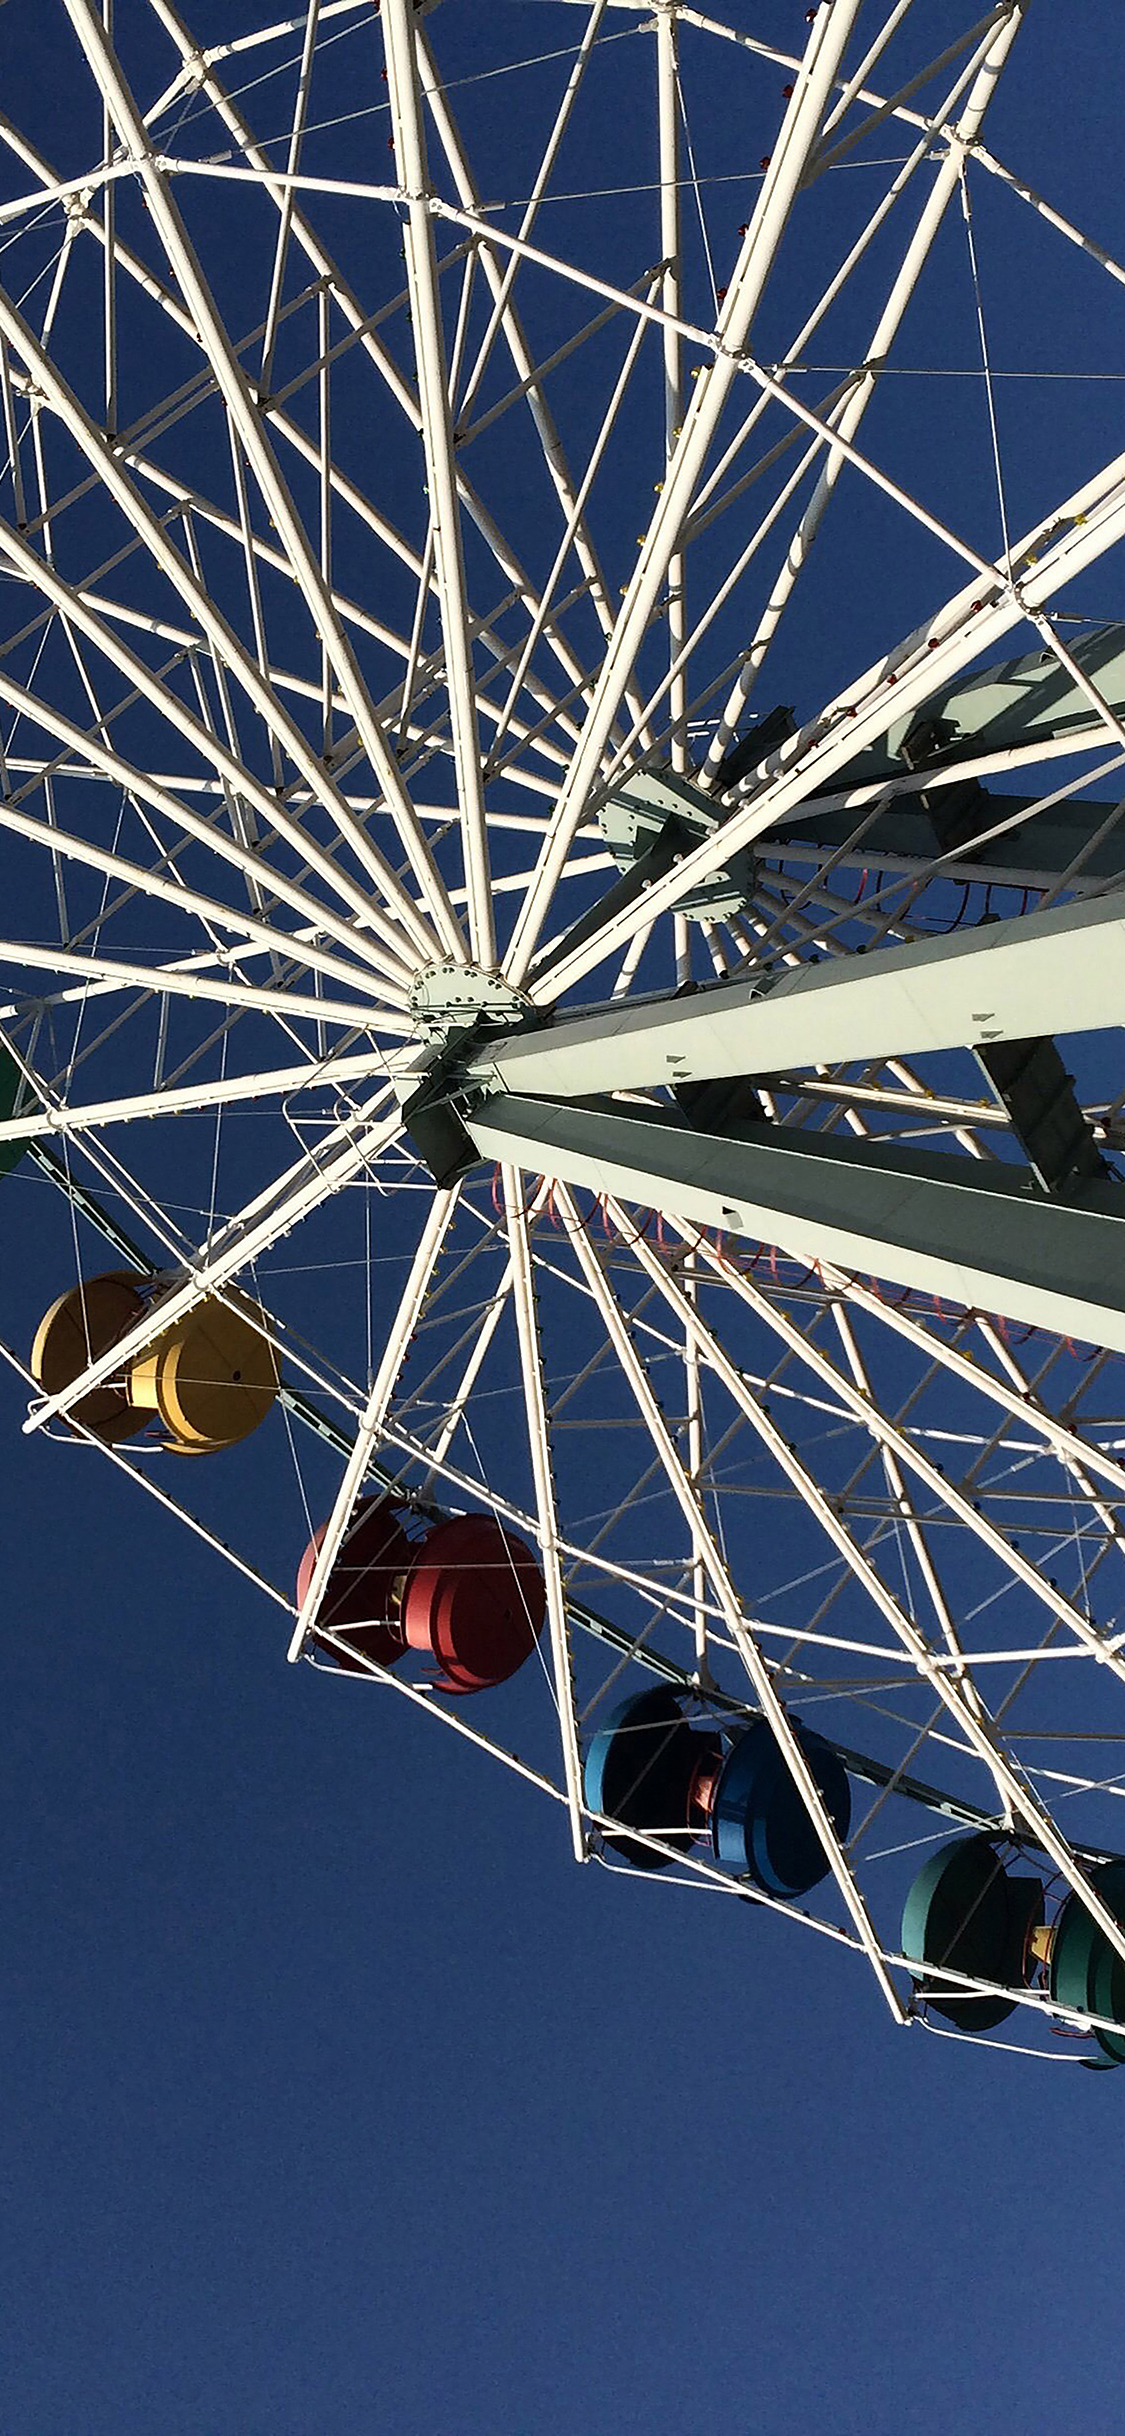 iPhoneXpapers.com-Apple-iPhone-wallpaper-mb12-wallpaper-ferris-wheel-blueday